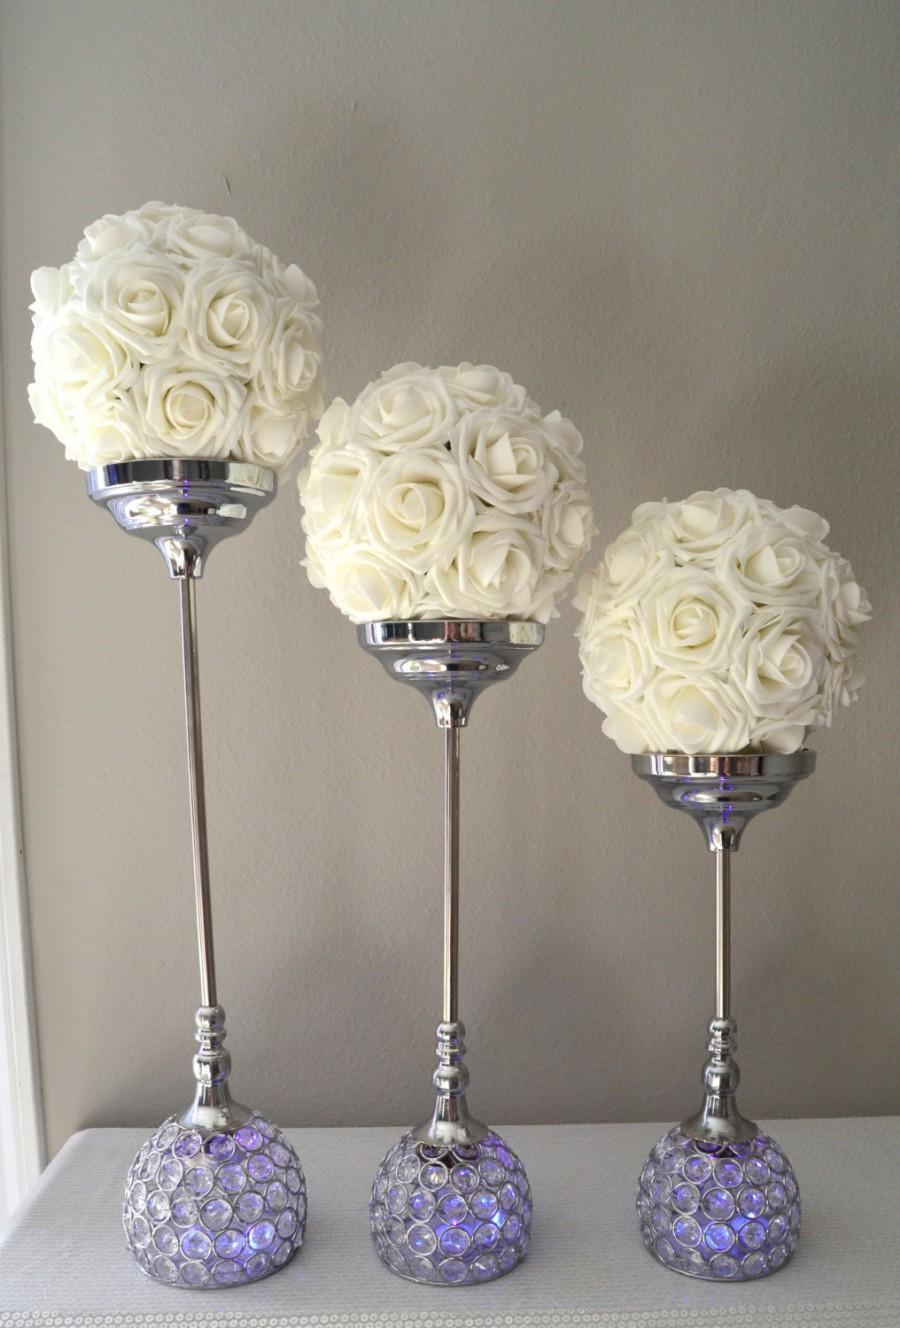 Crystal Candle Holder SET OF 3 Silver Bling Rhinestone Flower Ball Stands  Wedding Centerpiece Goblet